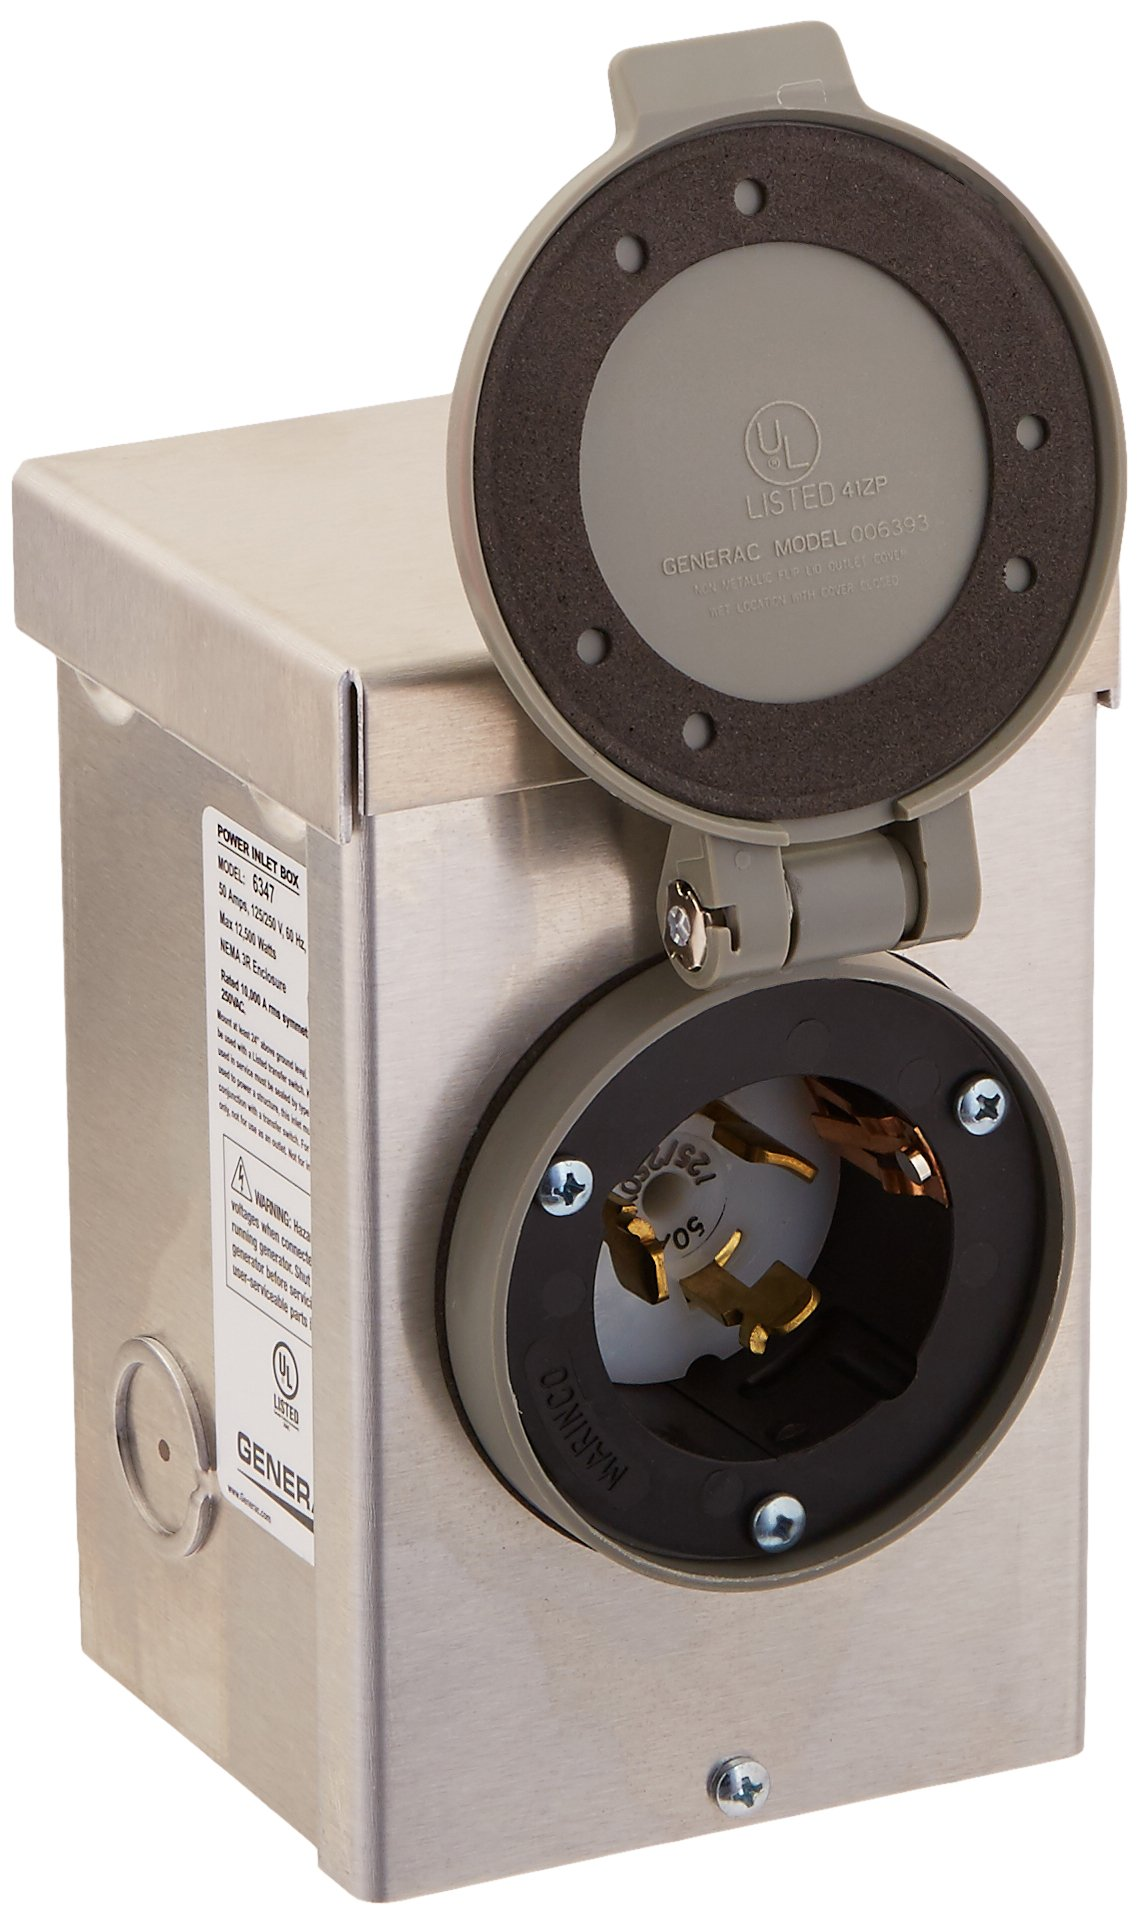 Generac 6347 50-Amp 125/250V Aluminum Power Inlet Box with Spring-Loaded Flip Lid by Generac (Image #2)